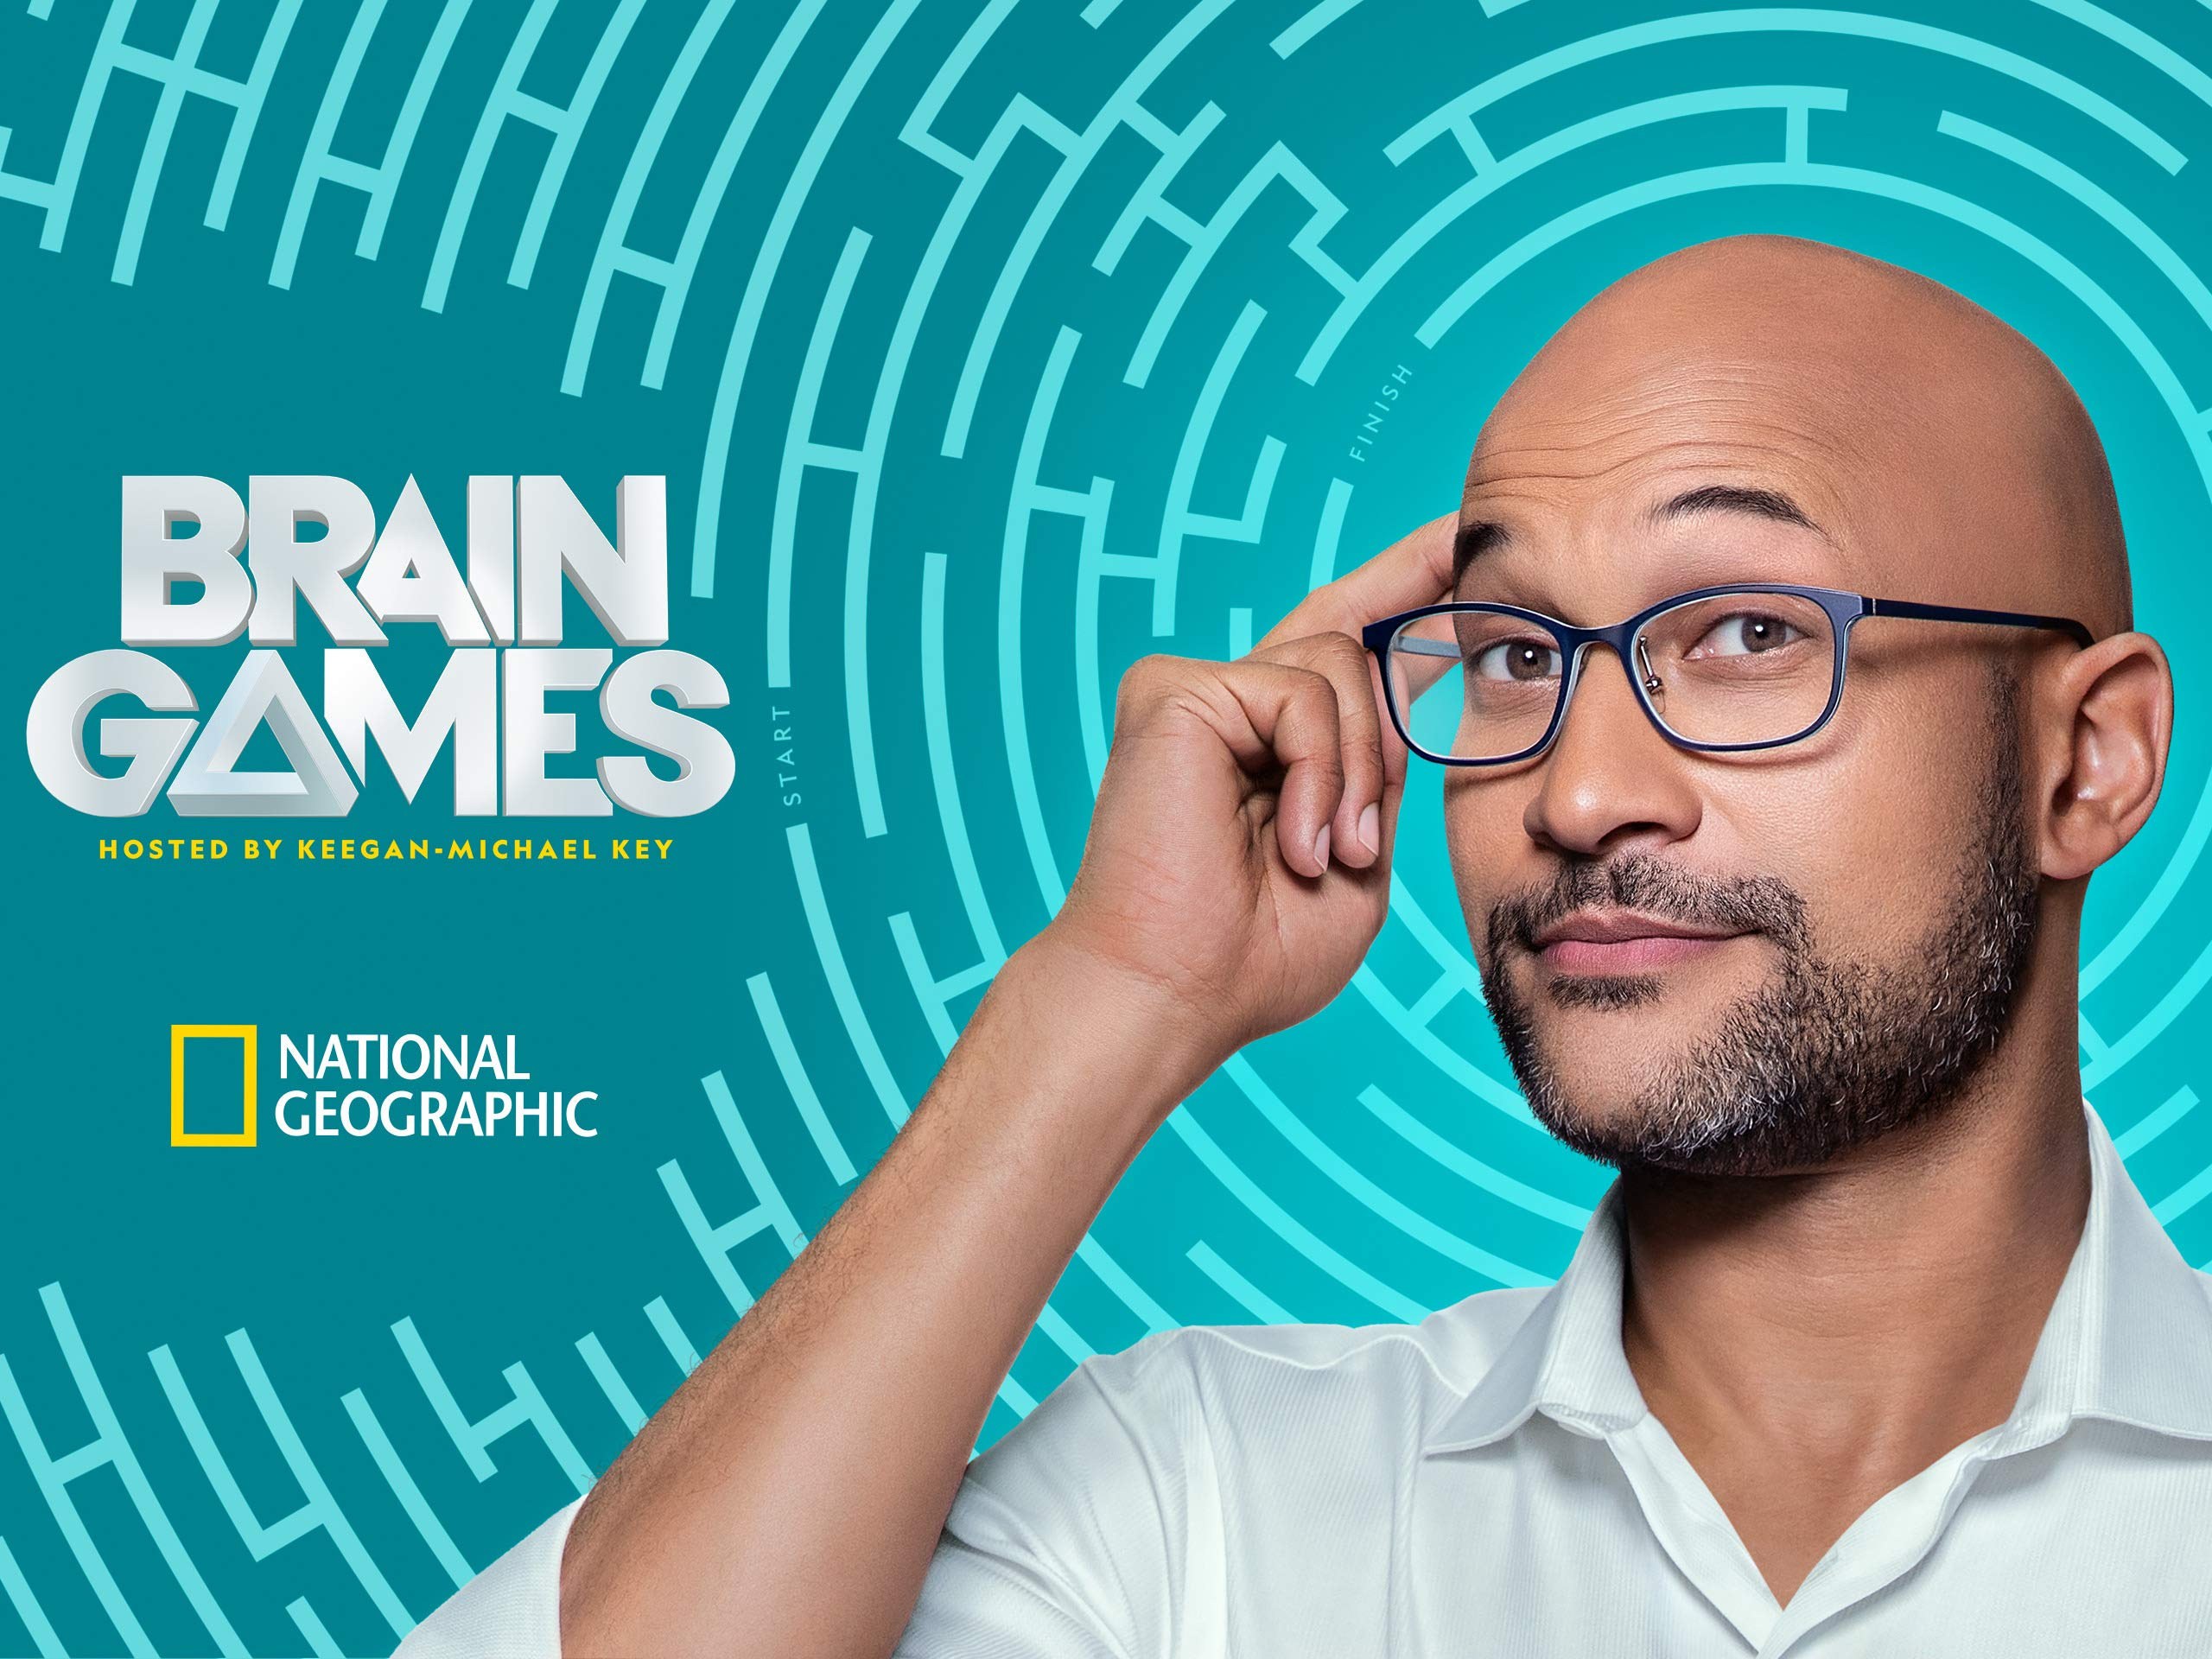 Amazon.com: Watch Brain Games Season 1 | Prime Video